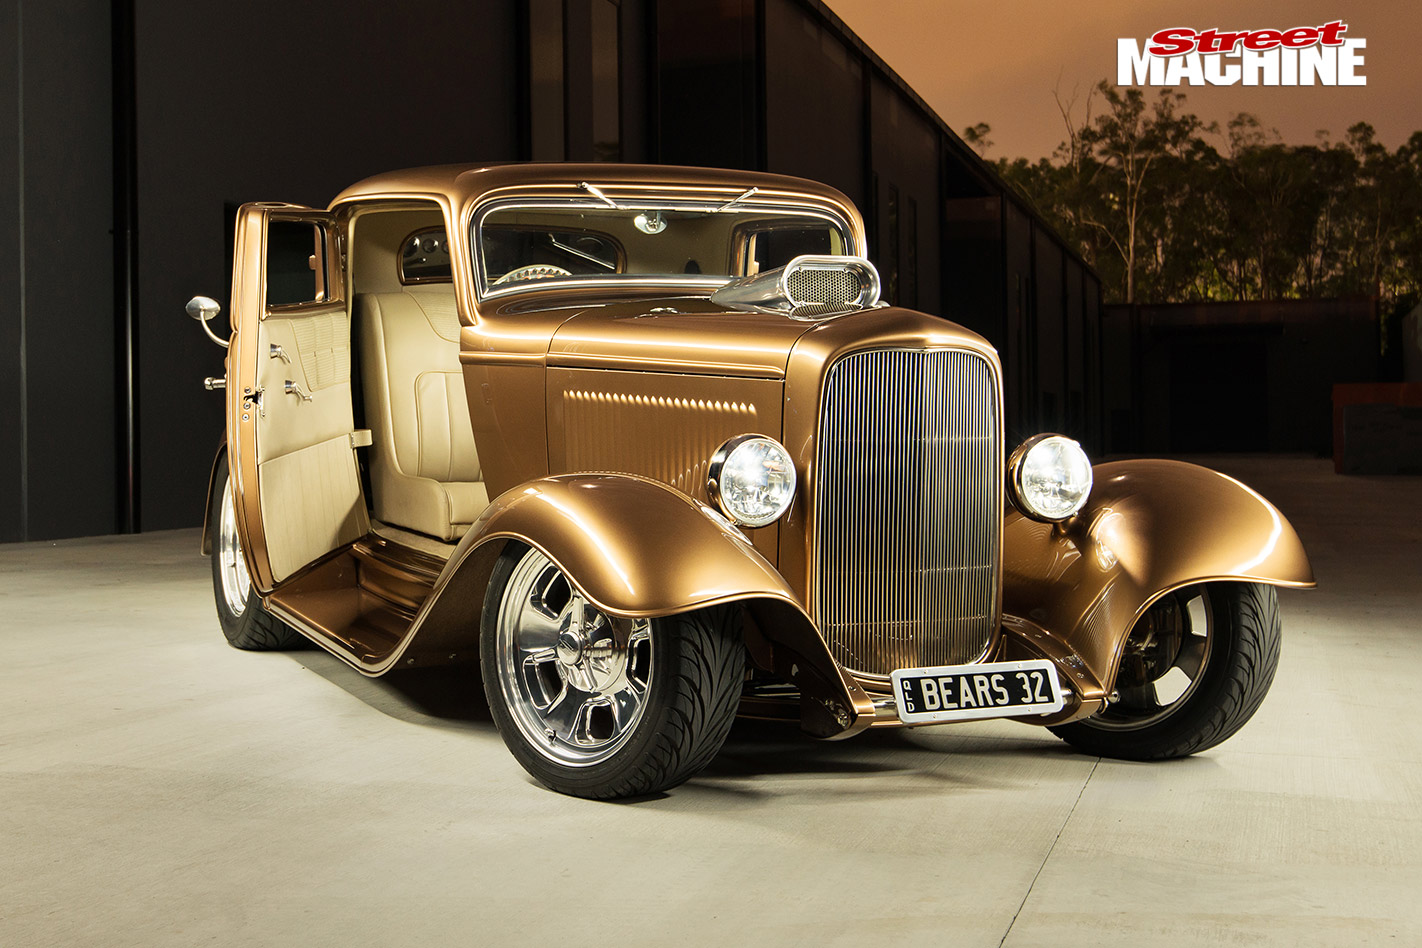 Ford 32 coupe